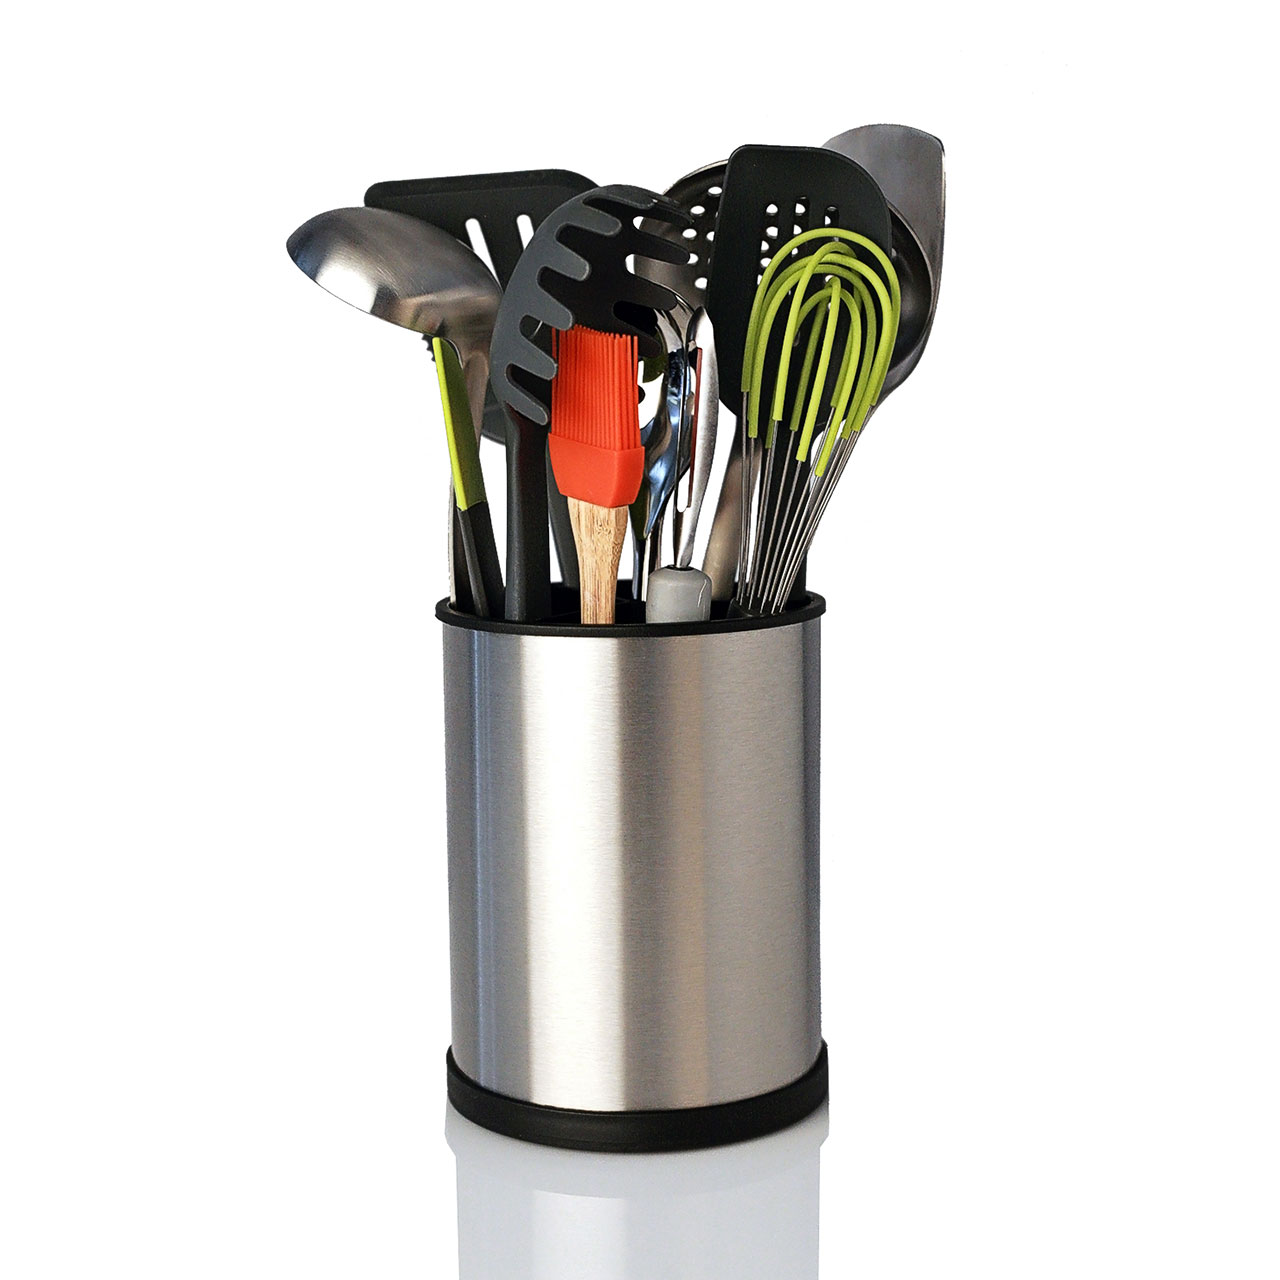 Stainless steel rotating utensil holder kapoosh ary for Kitchen utensil holder